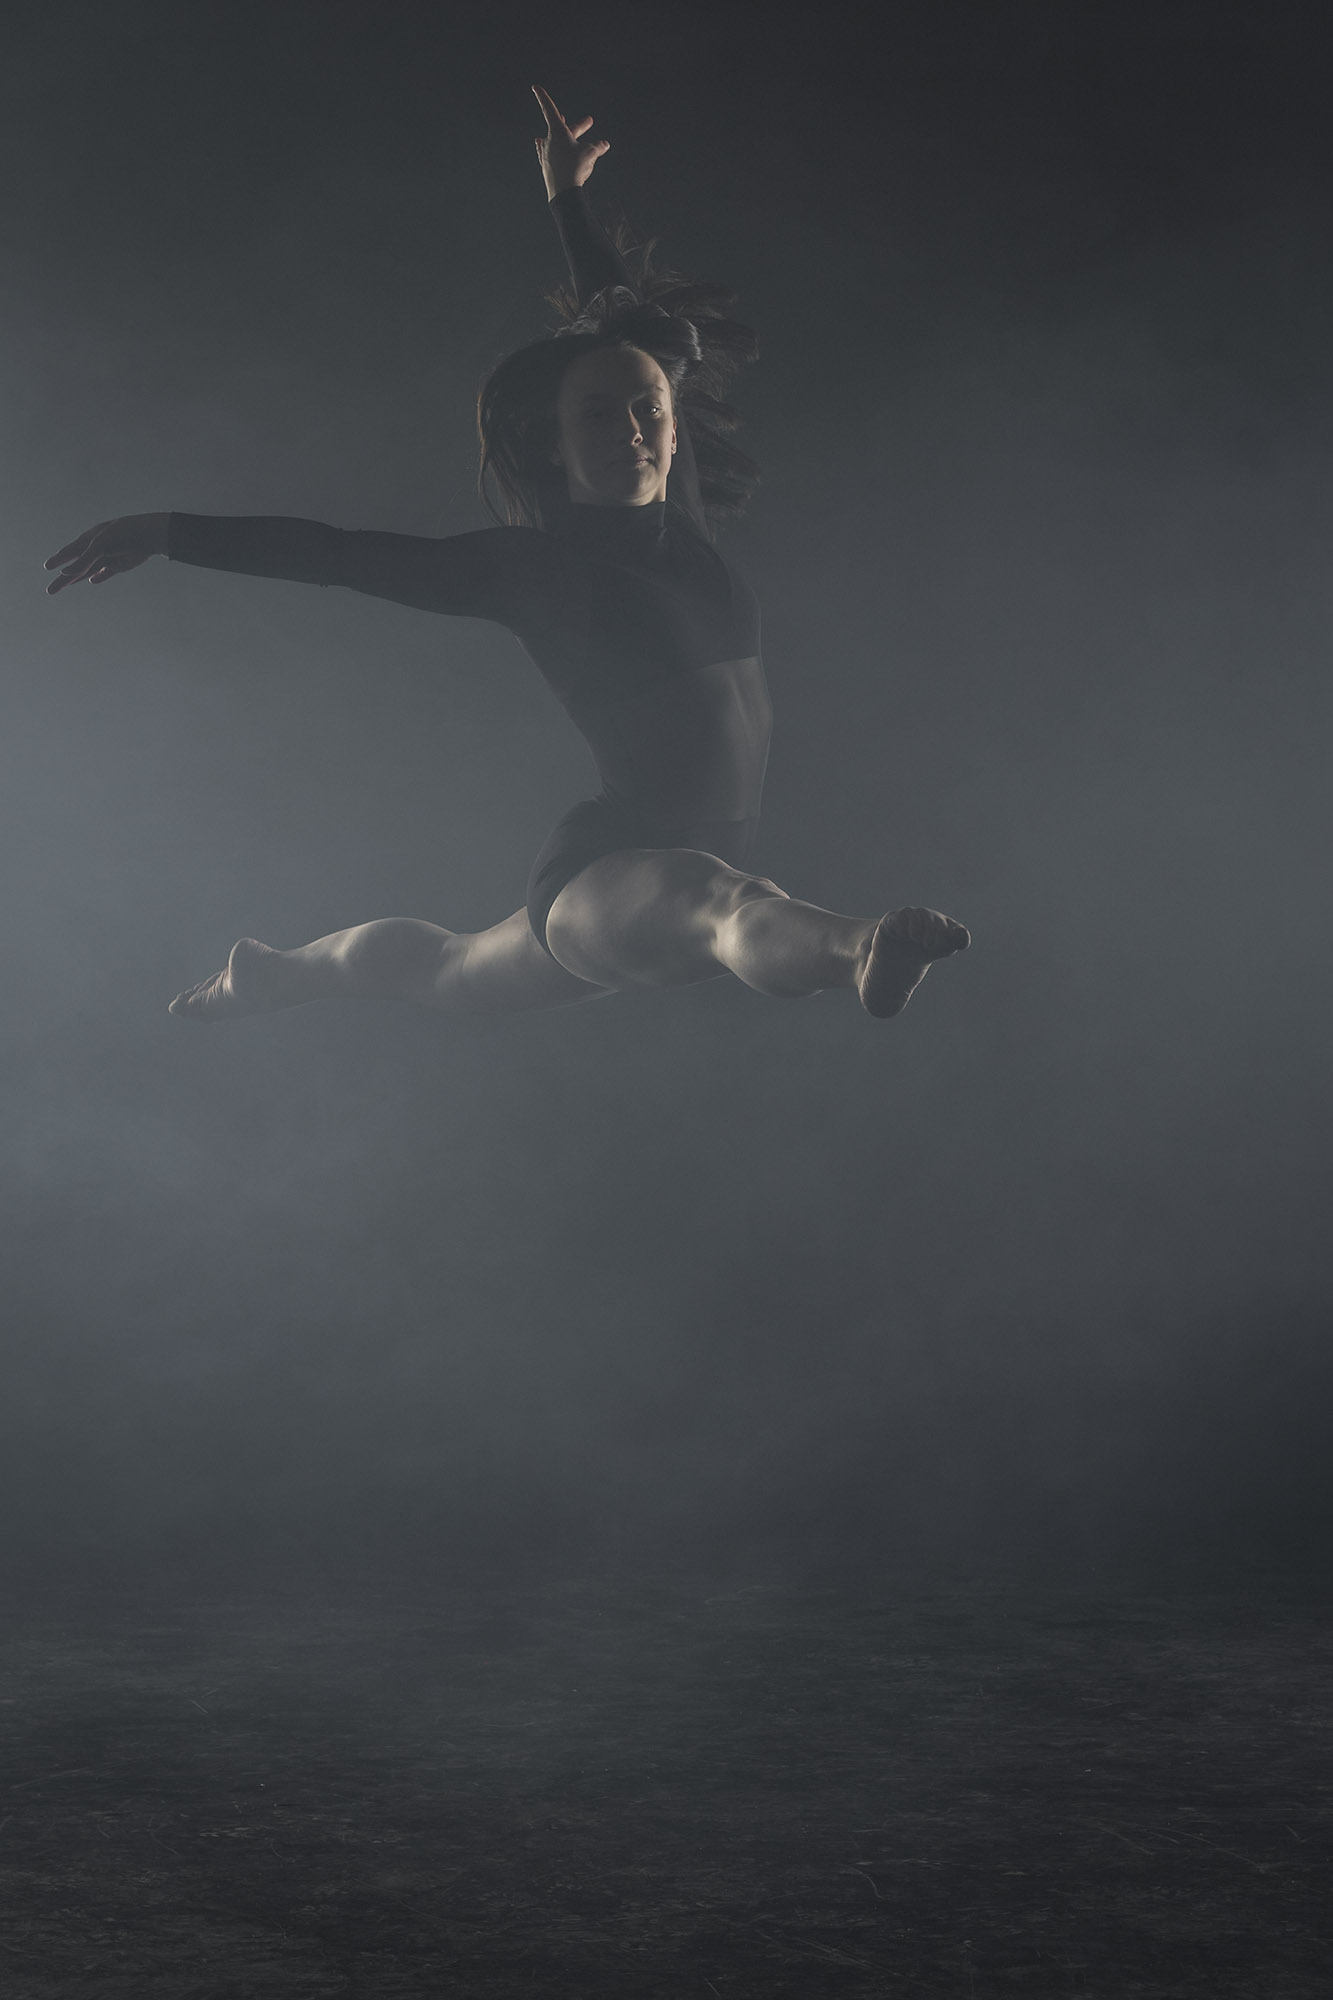 leaping-motion-dancer.jpg